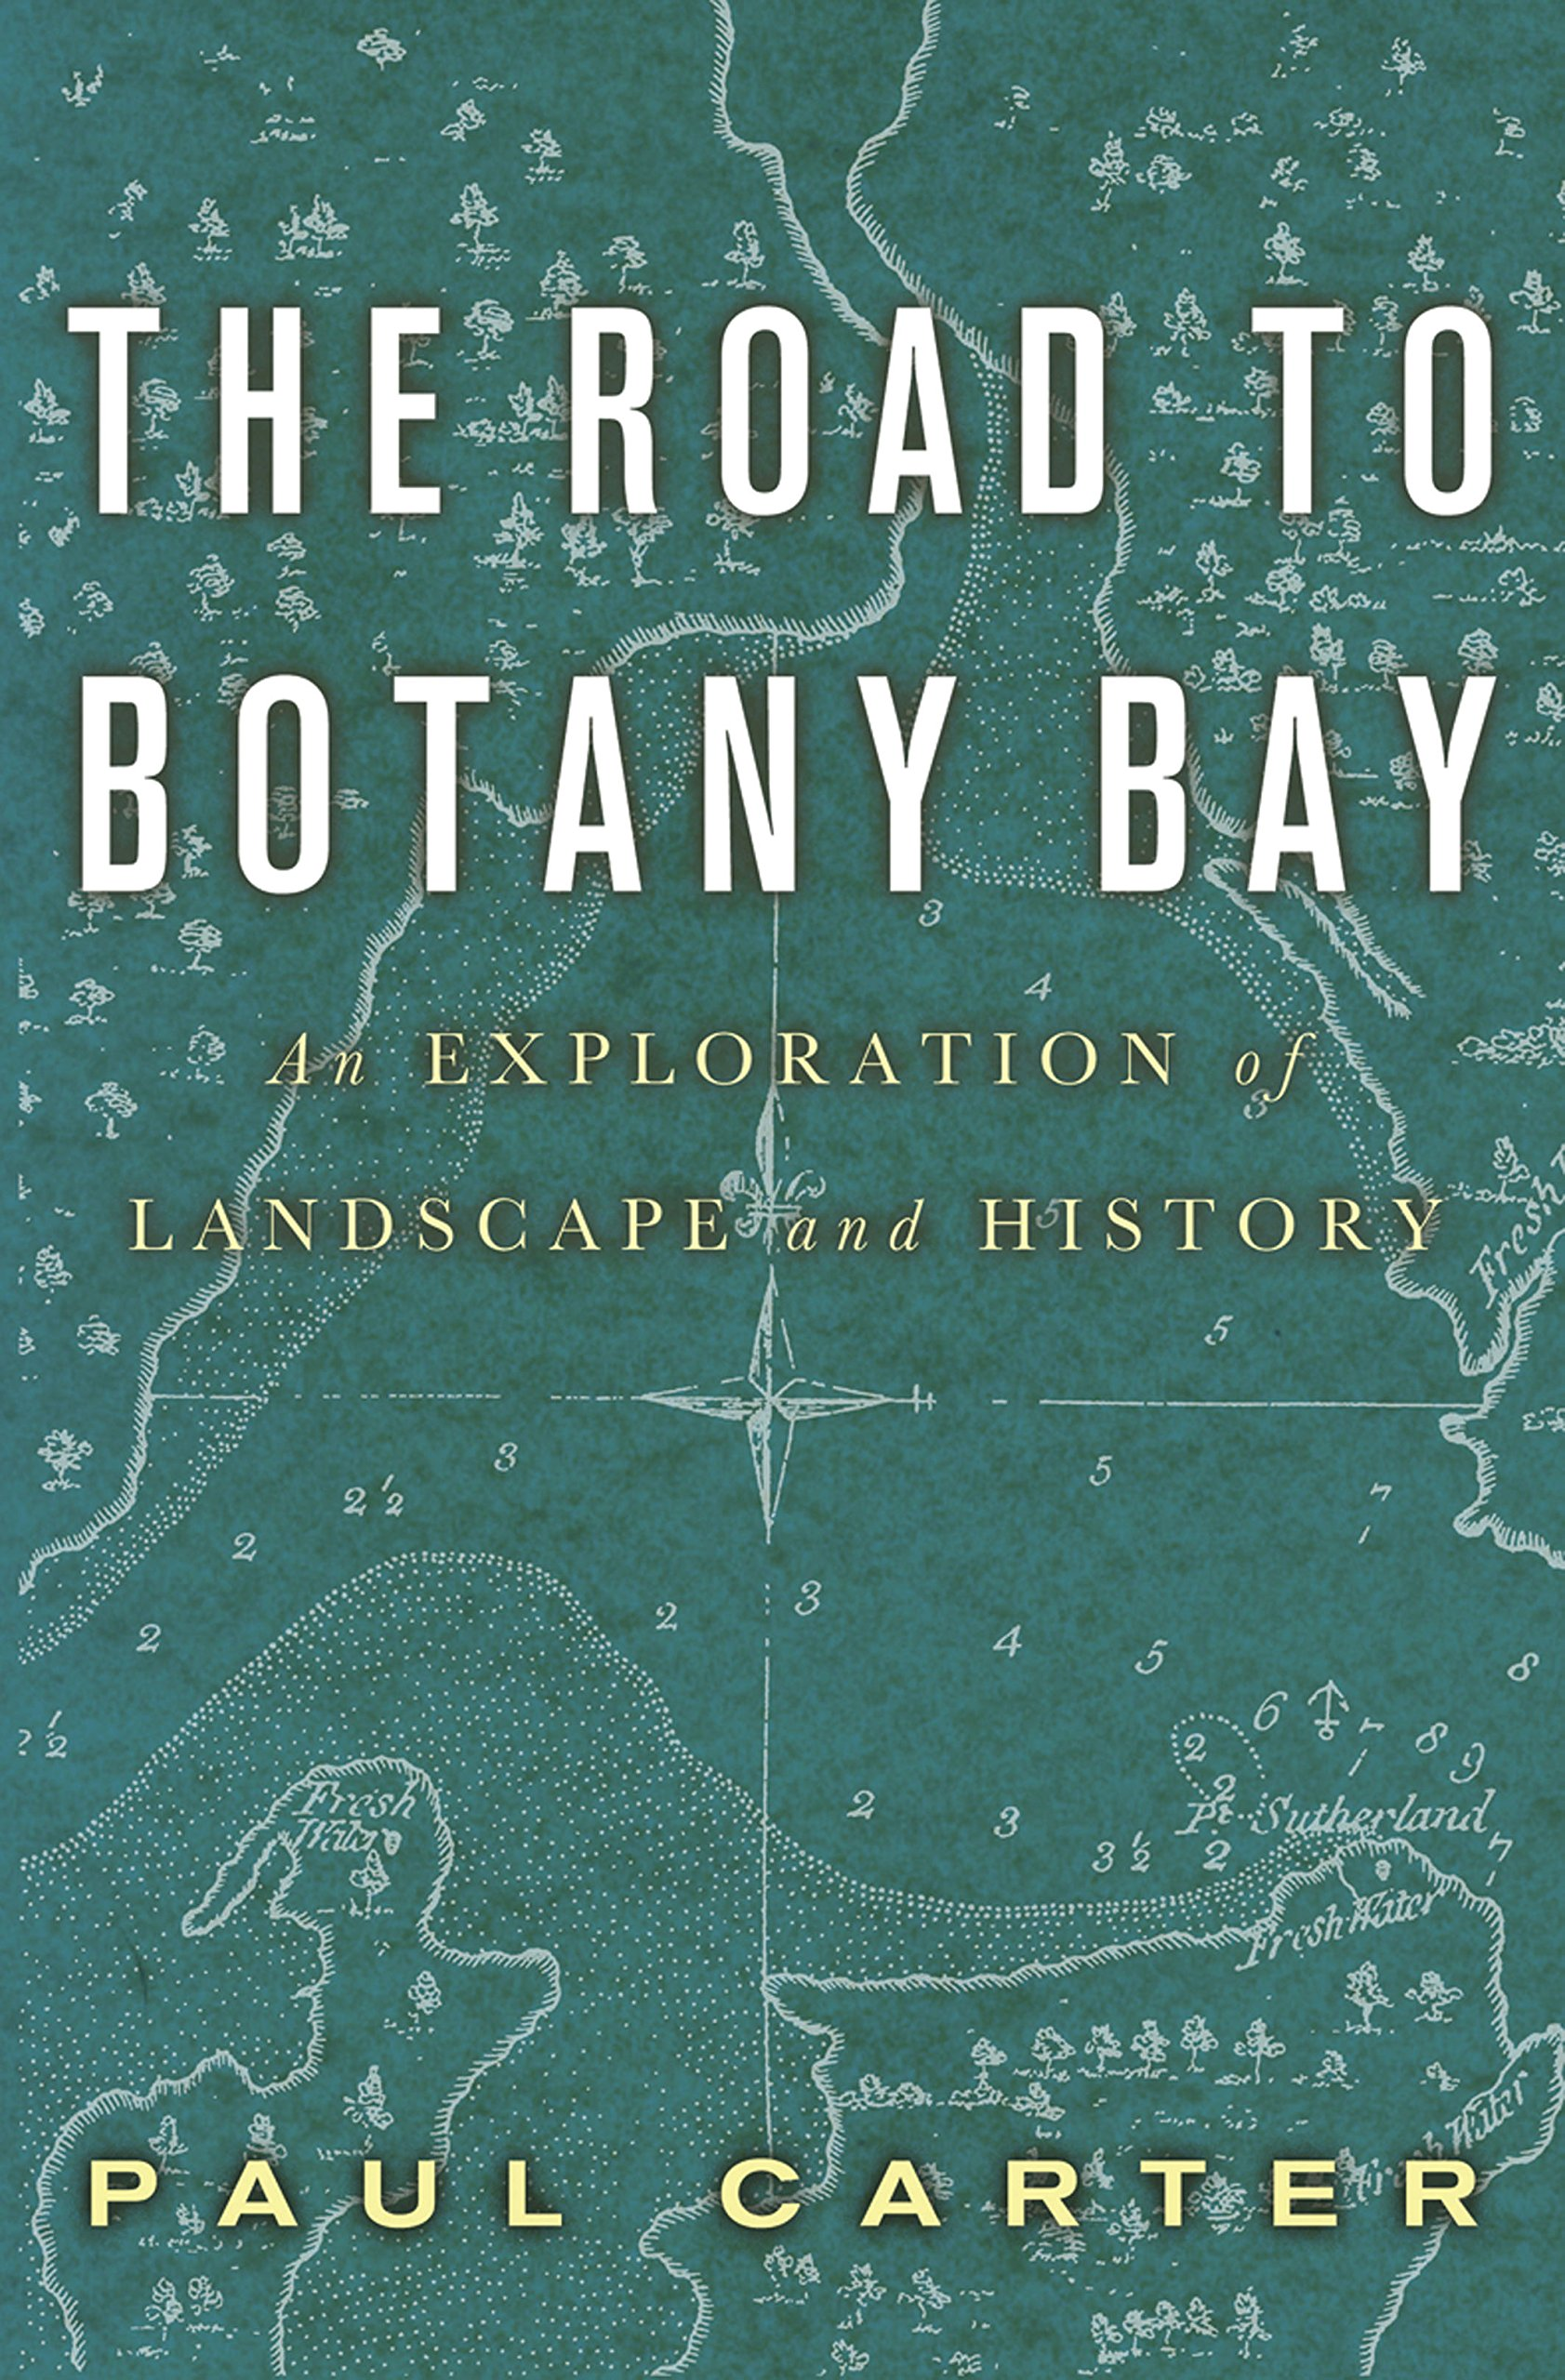 The Road to Botany Bay: An Exploration of Landscape and History:  Amazon.co.uk: Paul Carter: 9780816669974: Books